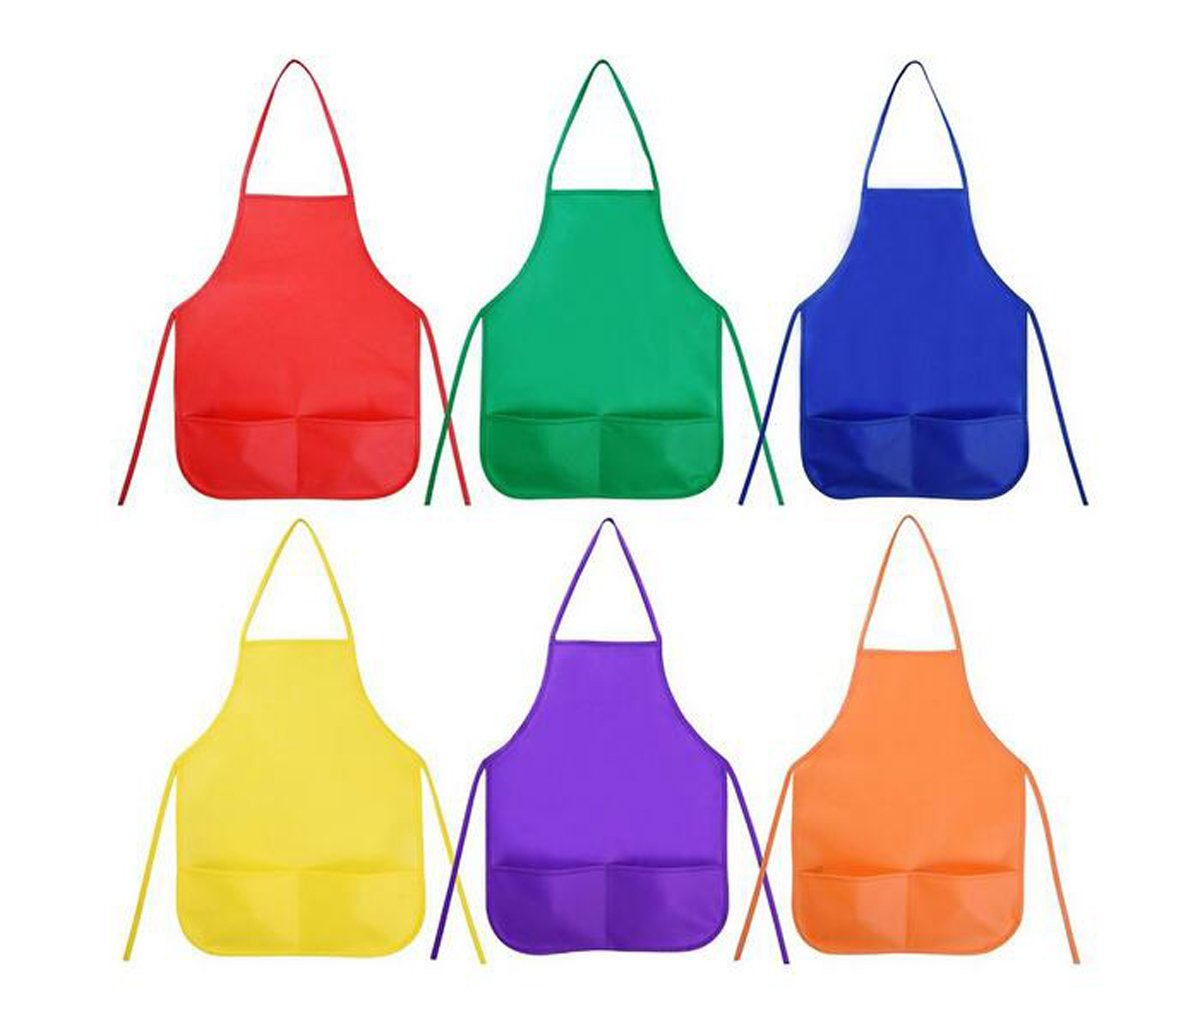 Set of 6 Assortted Colour Children Kids Painting Aprons Art Smocks with 2 Pockets for Painting and Baking Flyott